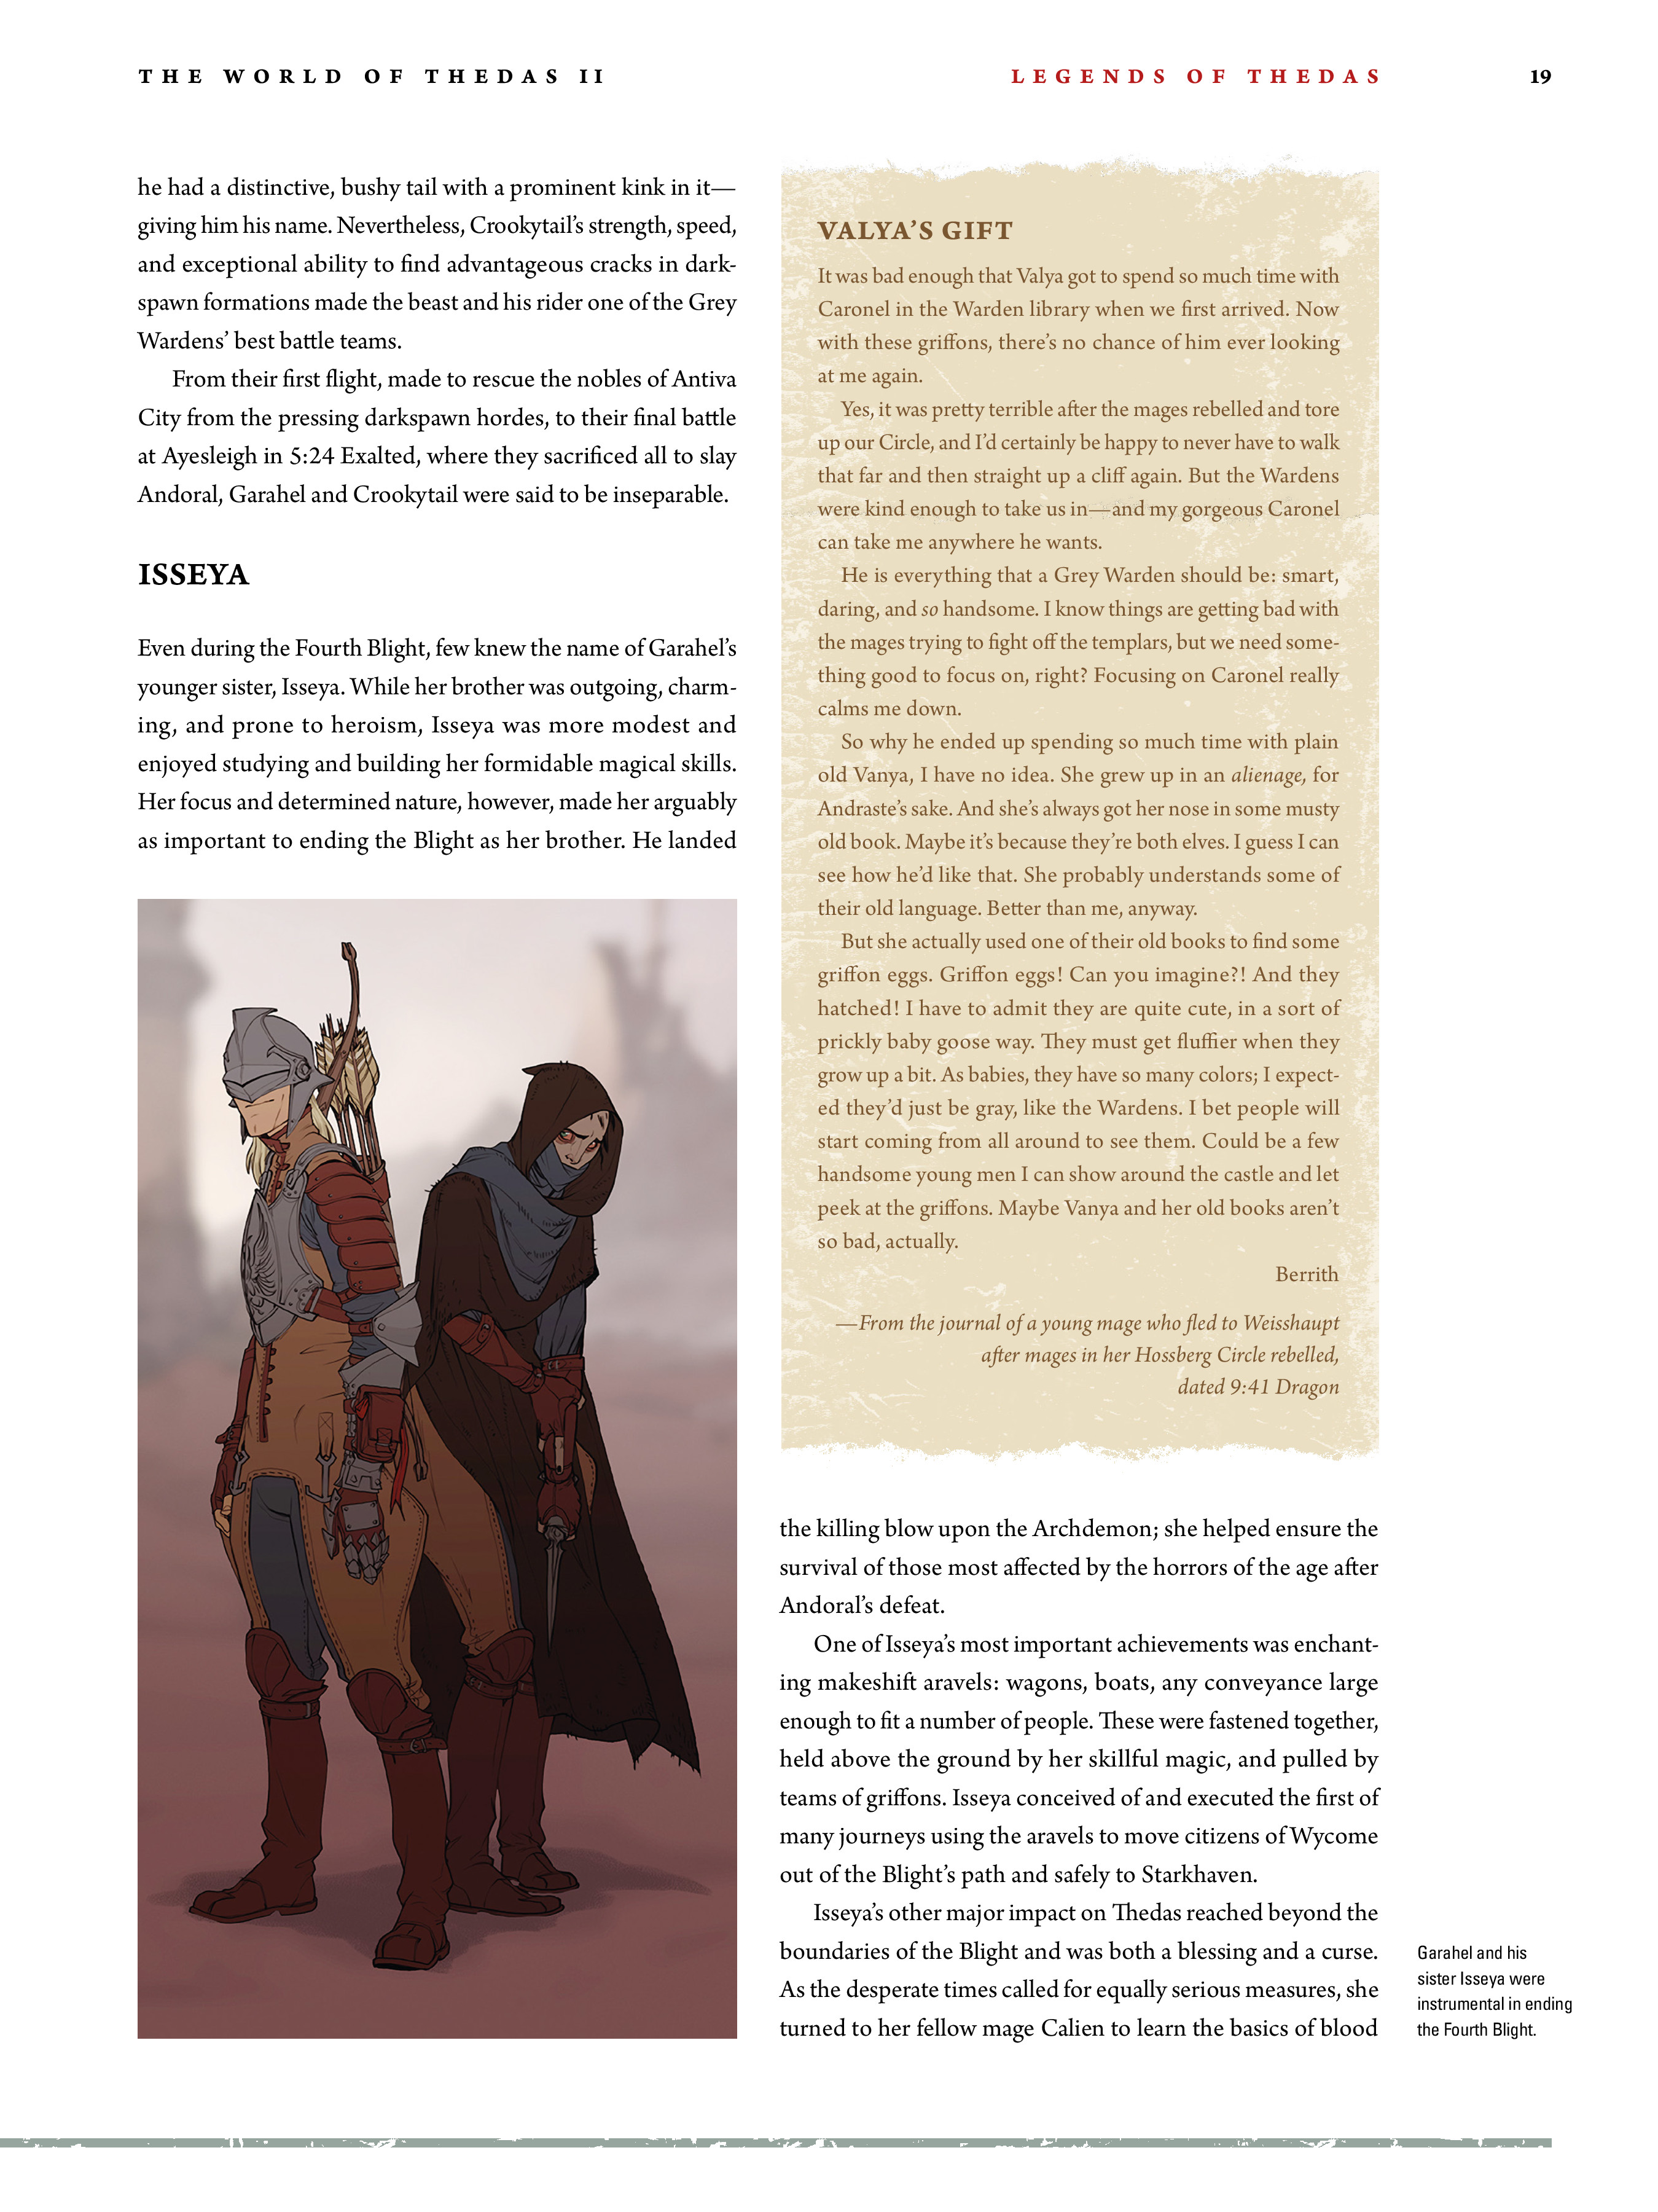 Read online Dragon Age: The World of Thedas comic -  Issue # TPB 2 - 17